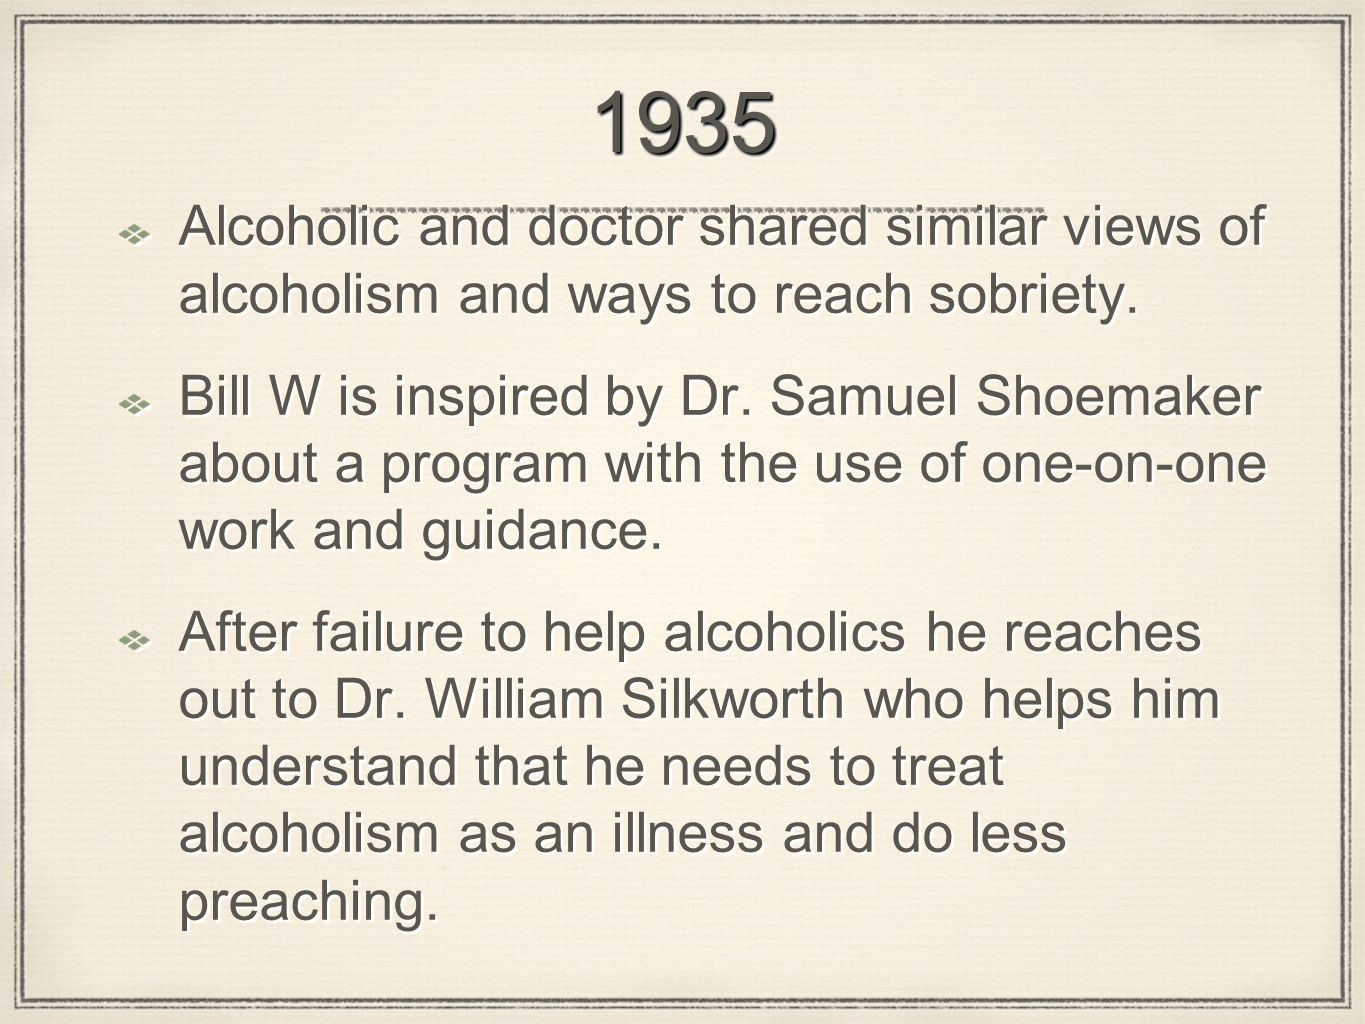 19351935 Alcoholic and doctor shared similar views of alcoholism and ways to reach sobriety.